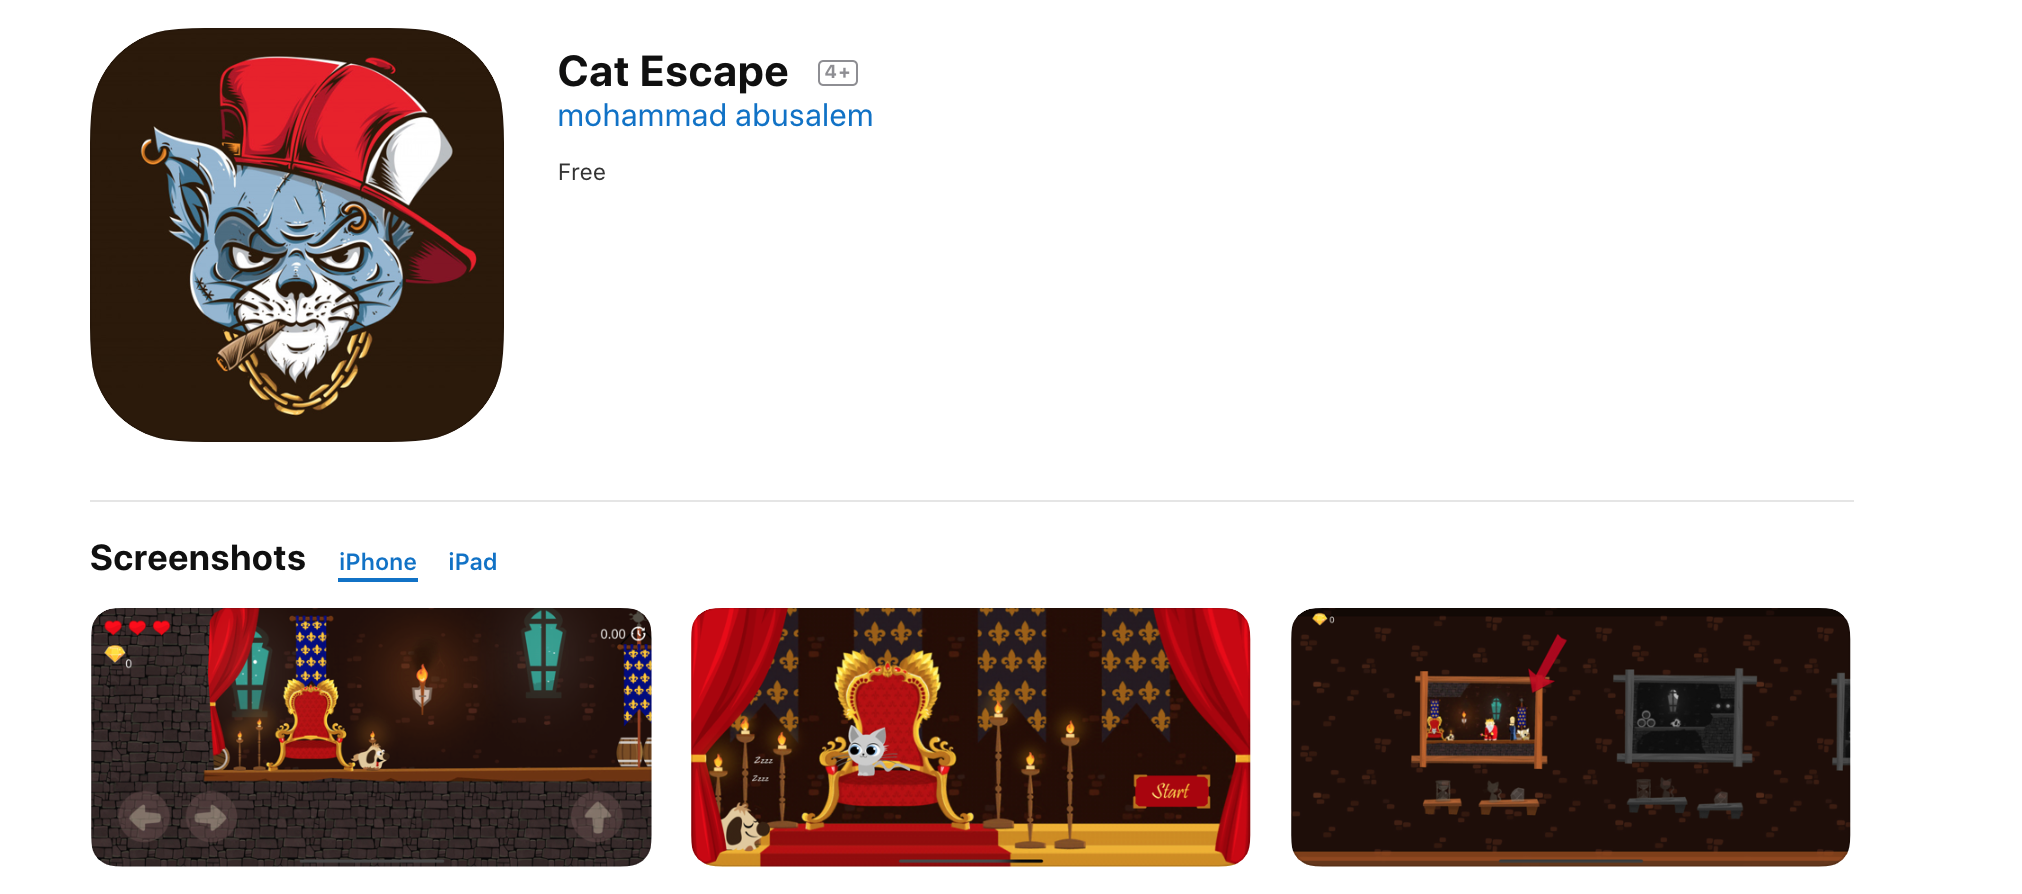 Cat Escape App Store page (appears in the search results for coronavirus)